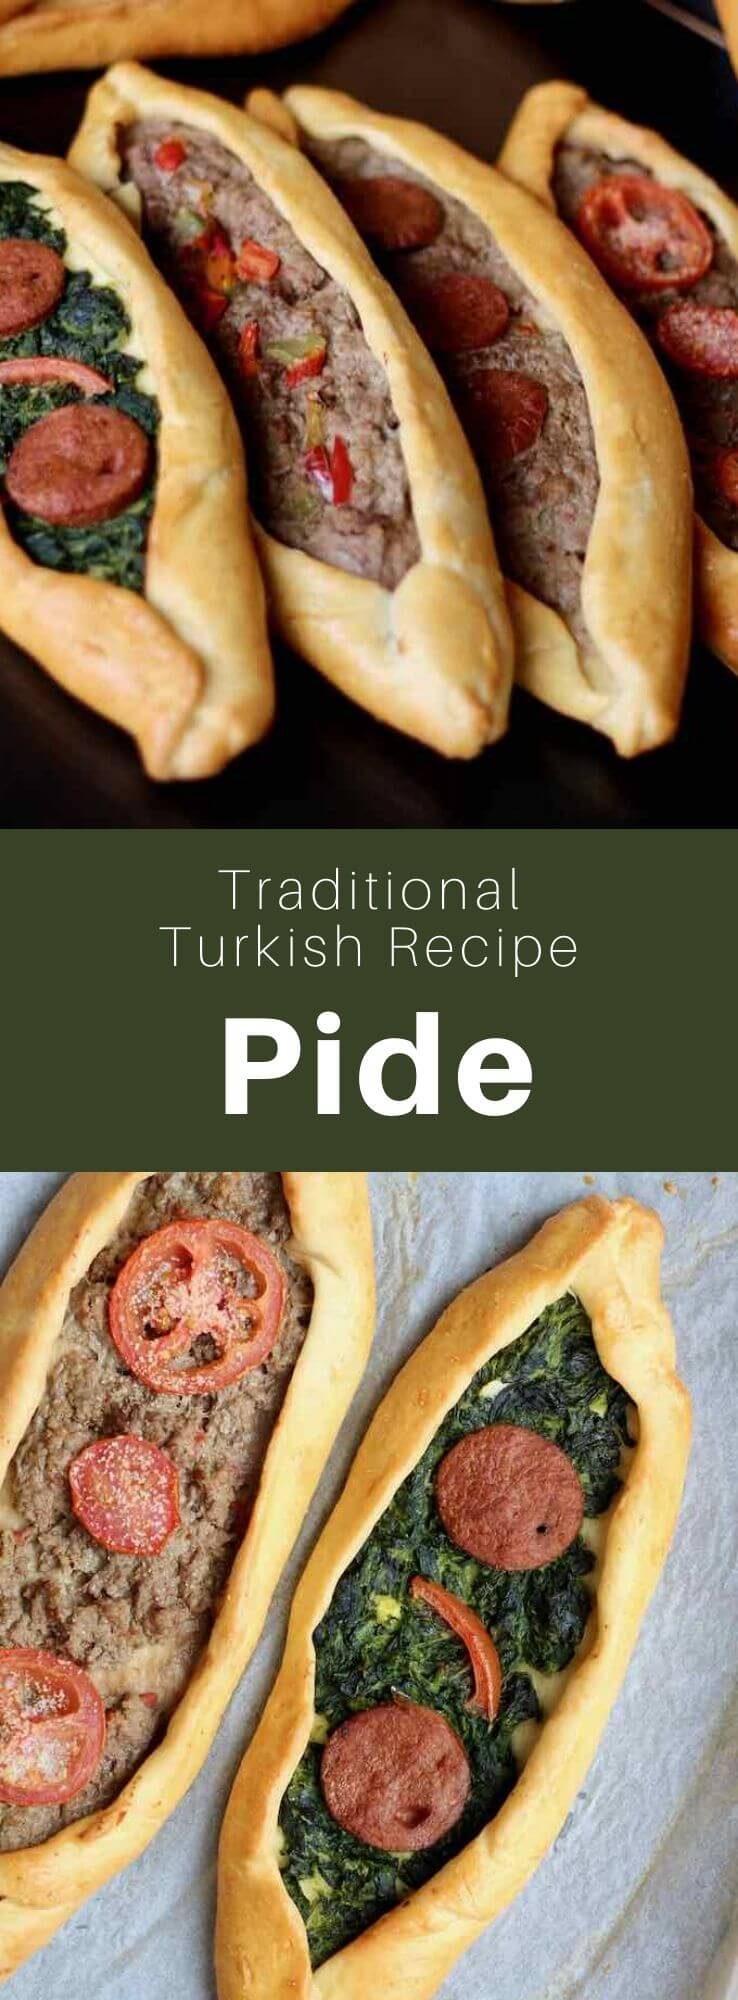 Nicknamed the Turkish pizza, pide is a boat-shaped bread topped with various ingredients, including meat and cheese. It is close to the lahmacun. #Turkey #Turkish #TurkishRecipe #TurkishFood #TurkishCuisine #WorldCuisine #196flavors